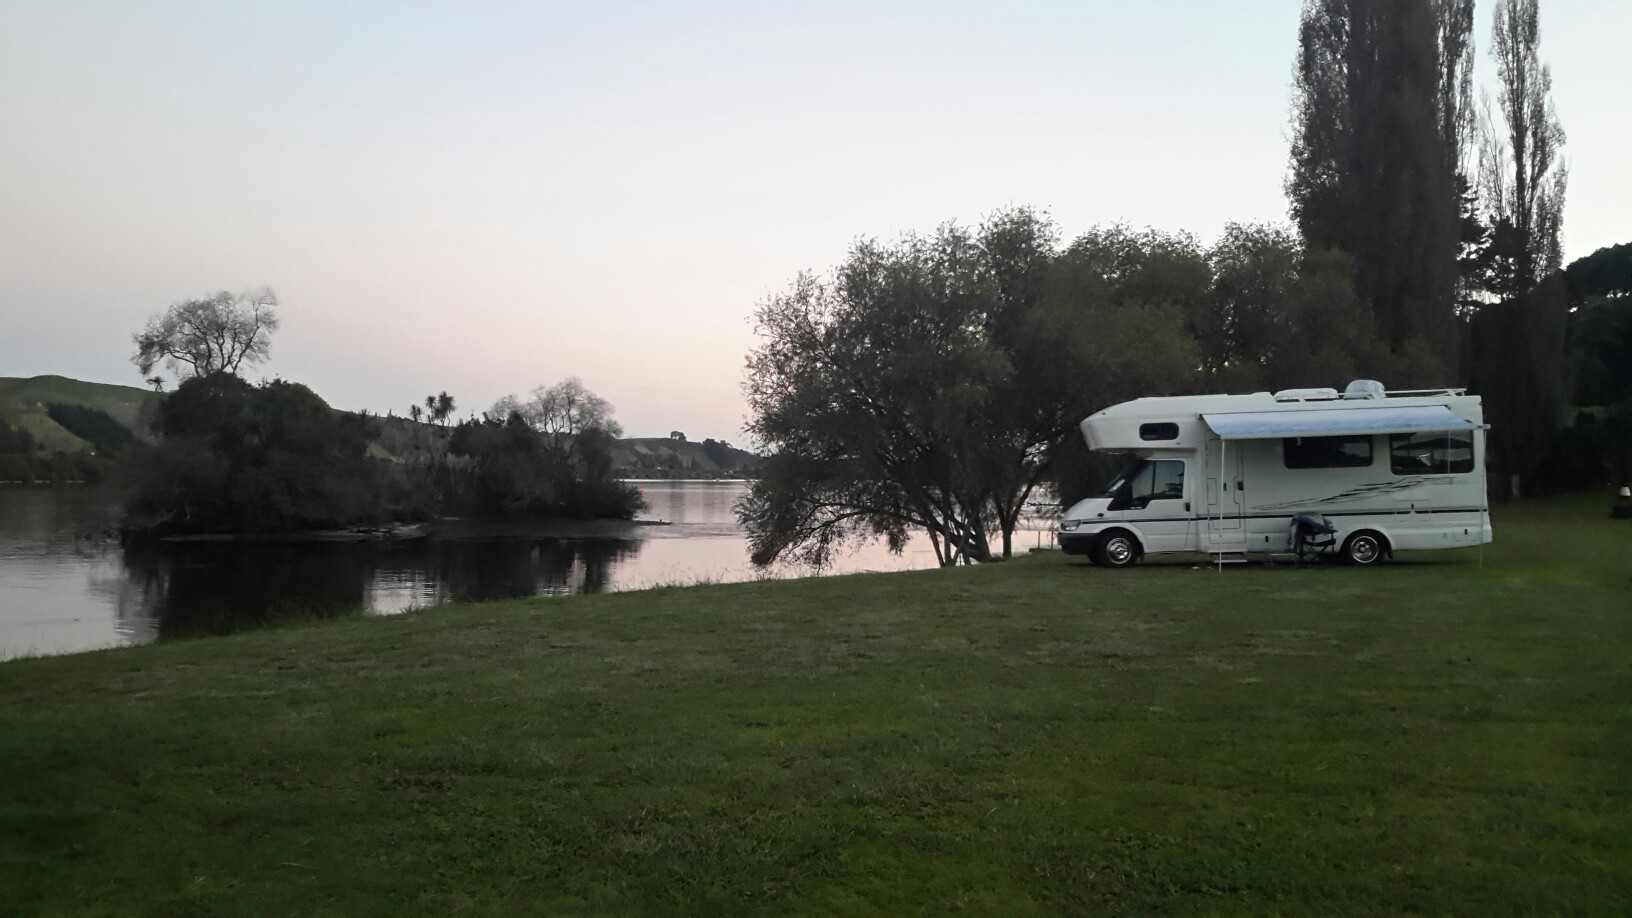 AJ's Motorhome Park - Horahora New Zealand, a great place for the campervan overnight